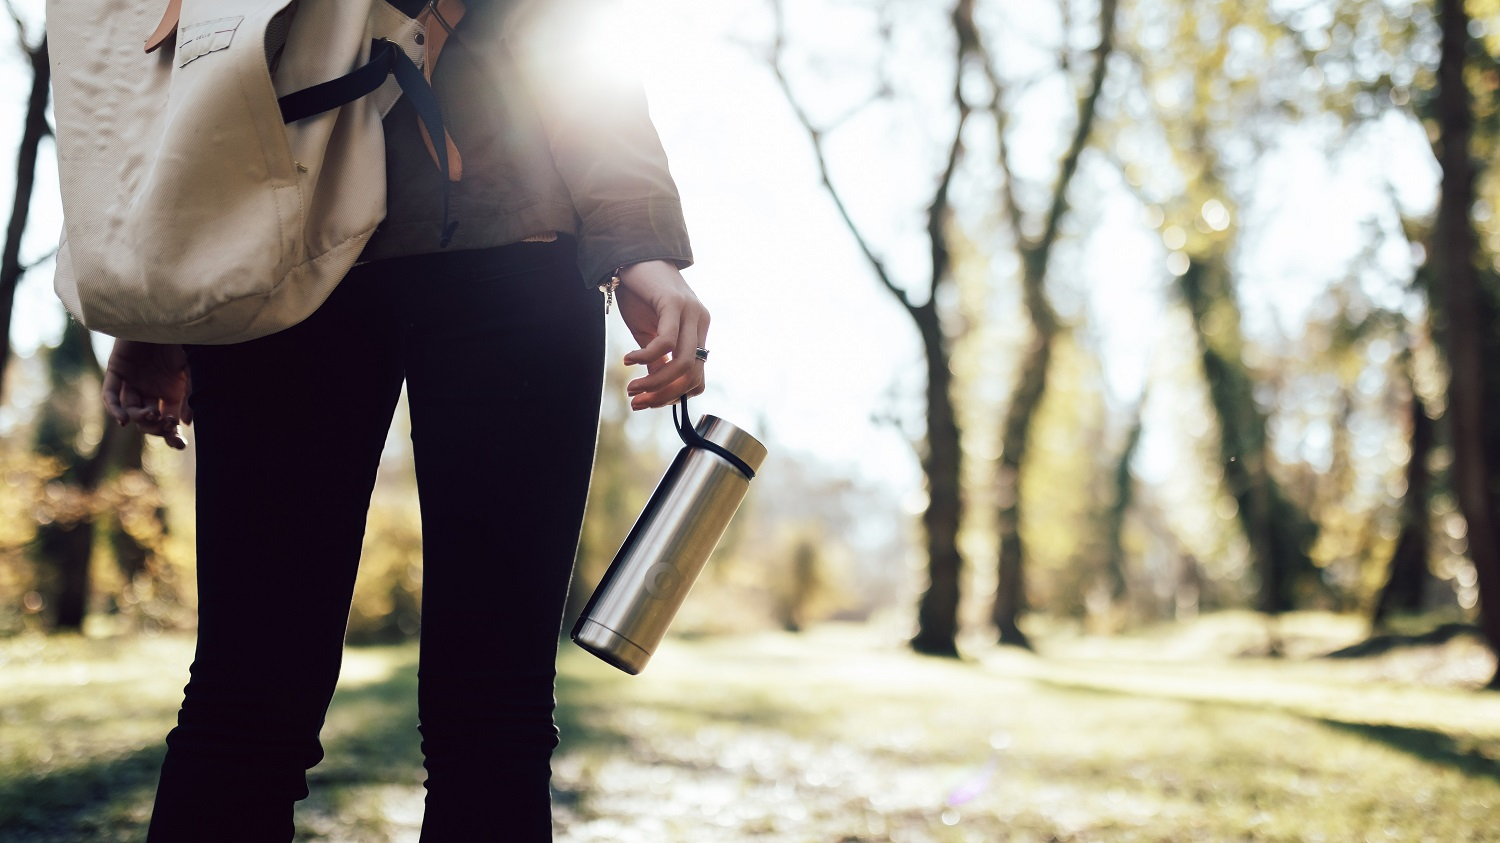 Zero waste travel and reduce waste while traveling - reusable bottle